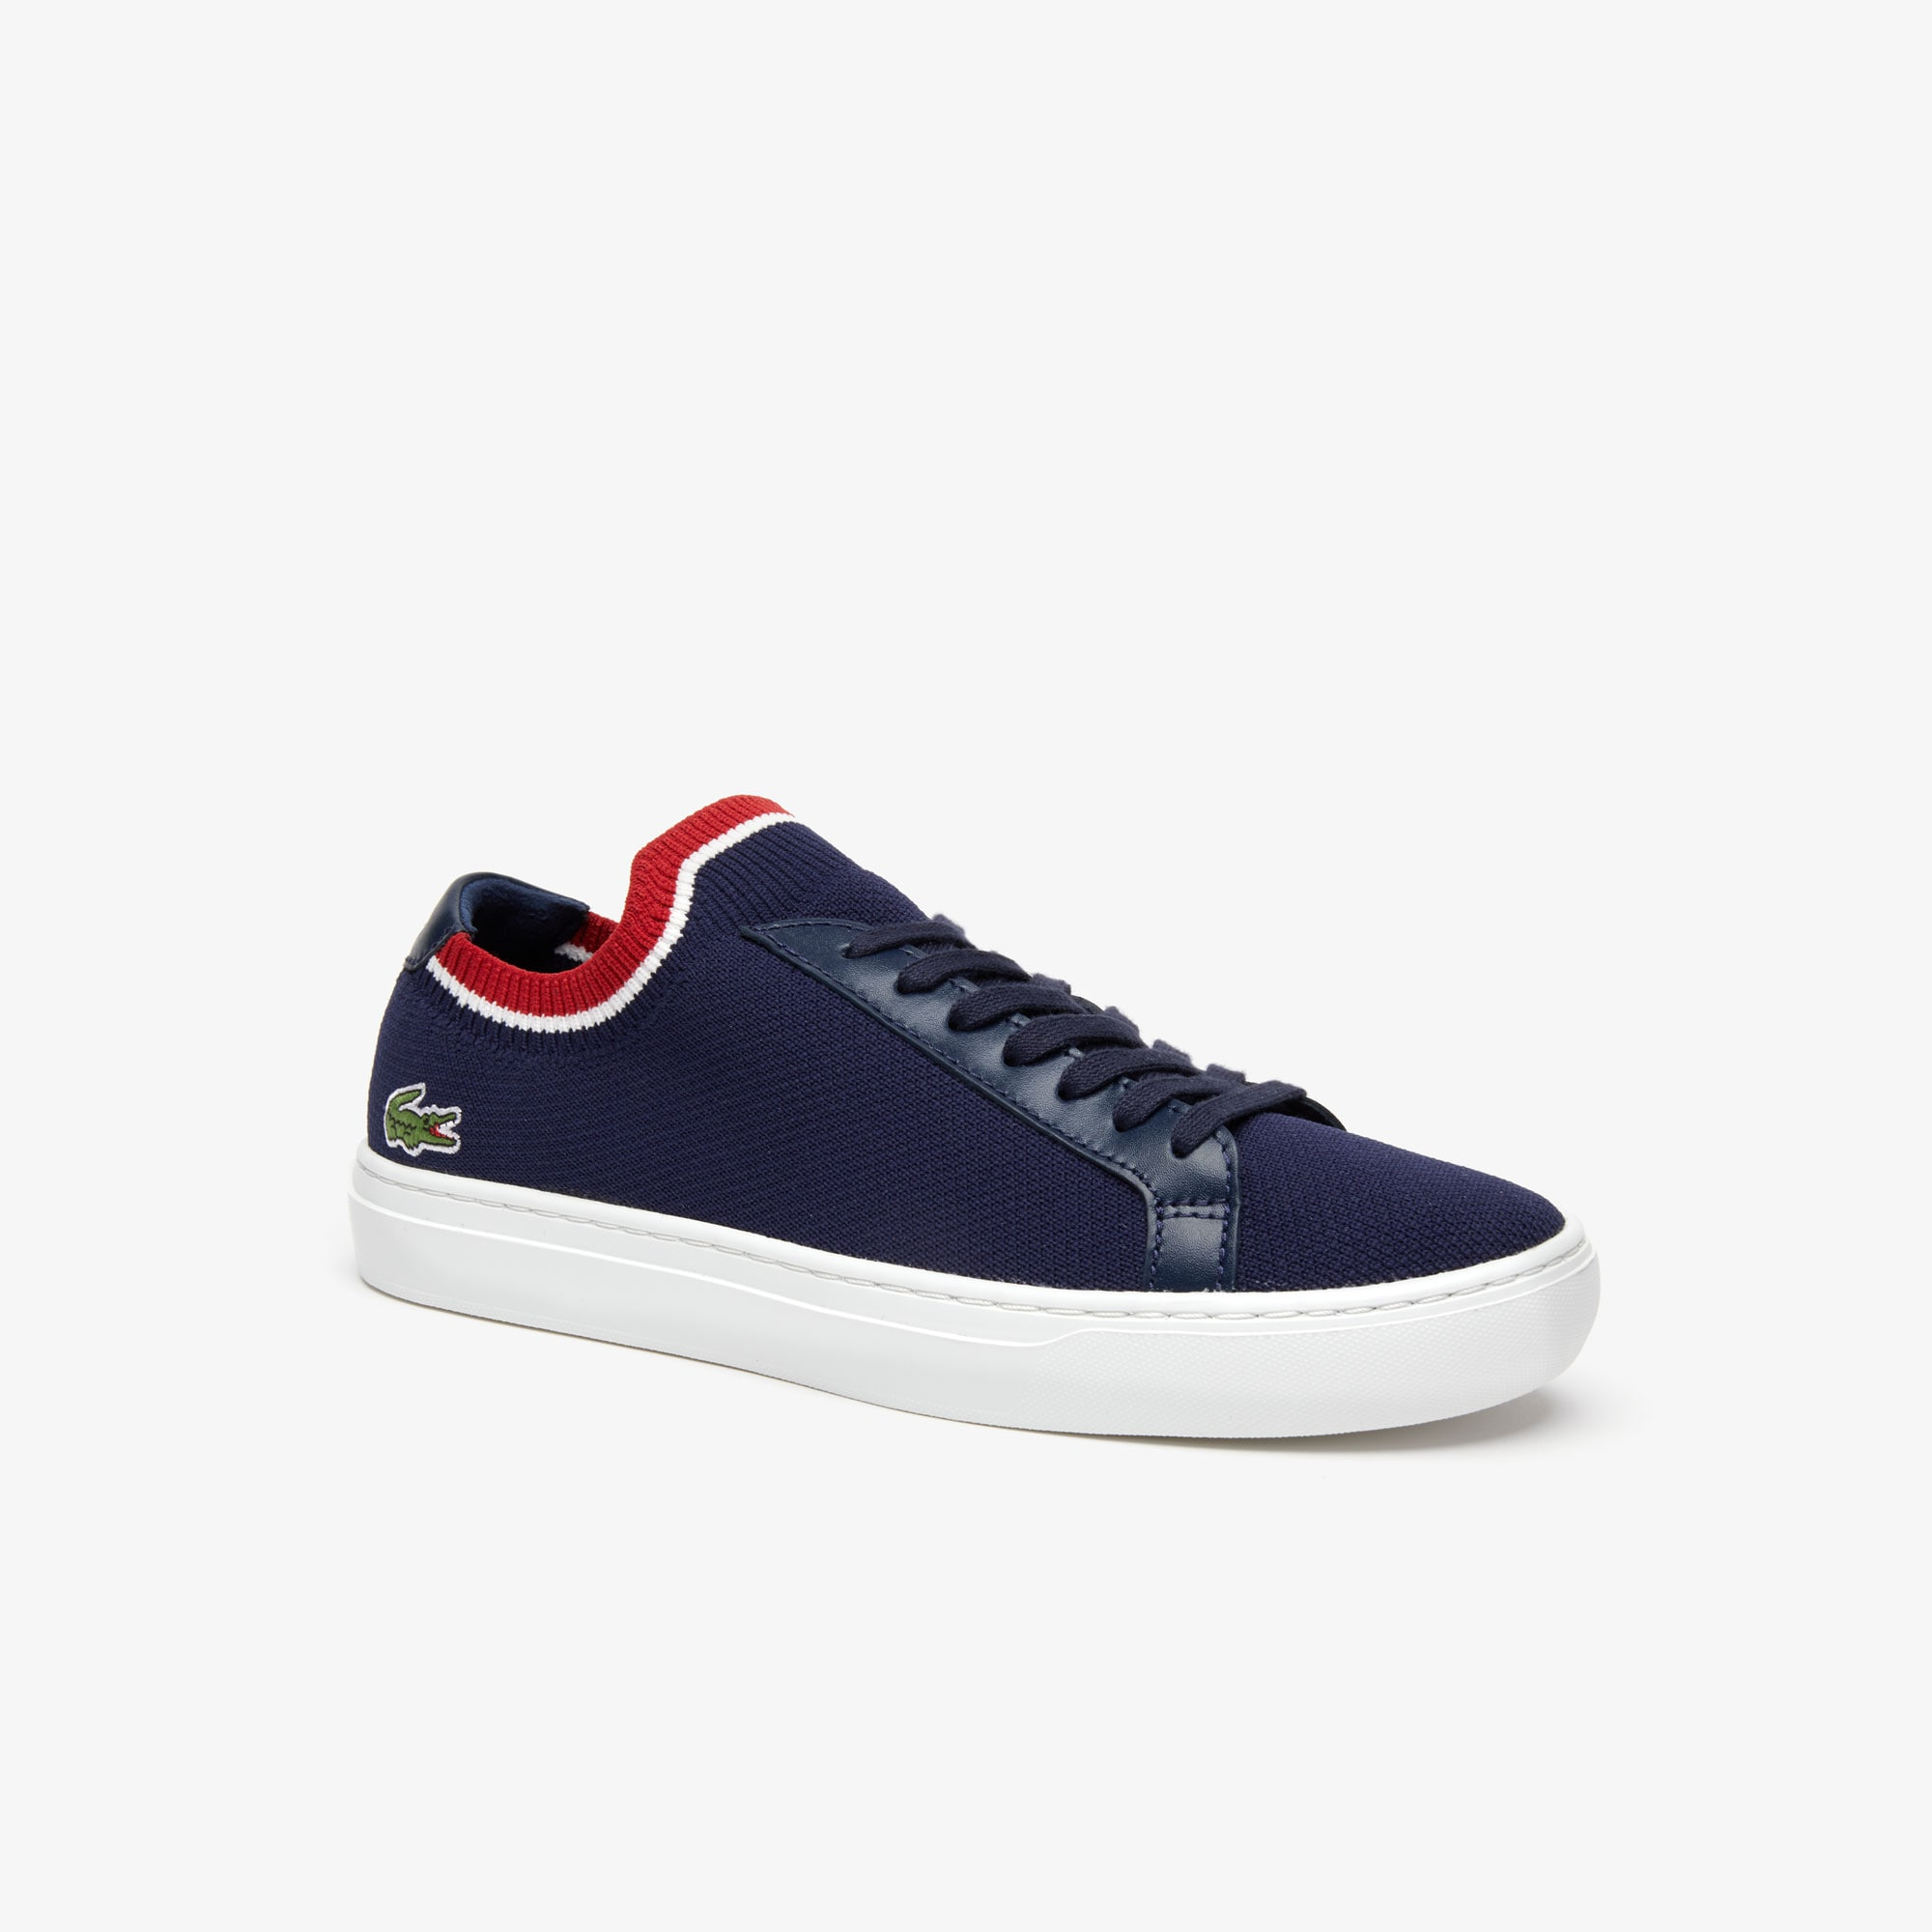 0074c508a8801 Lacoste shoes for men  Sneakers